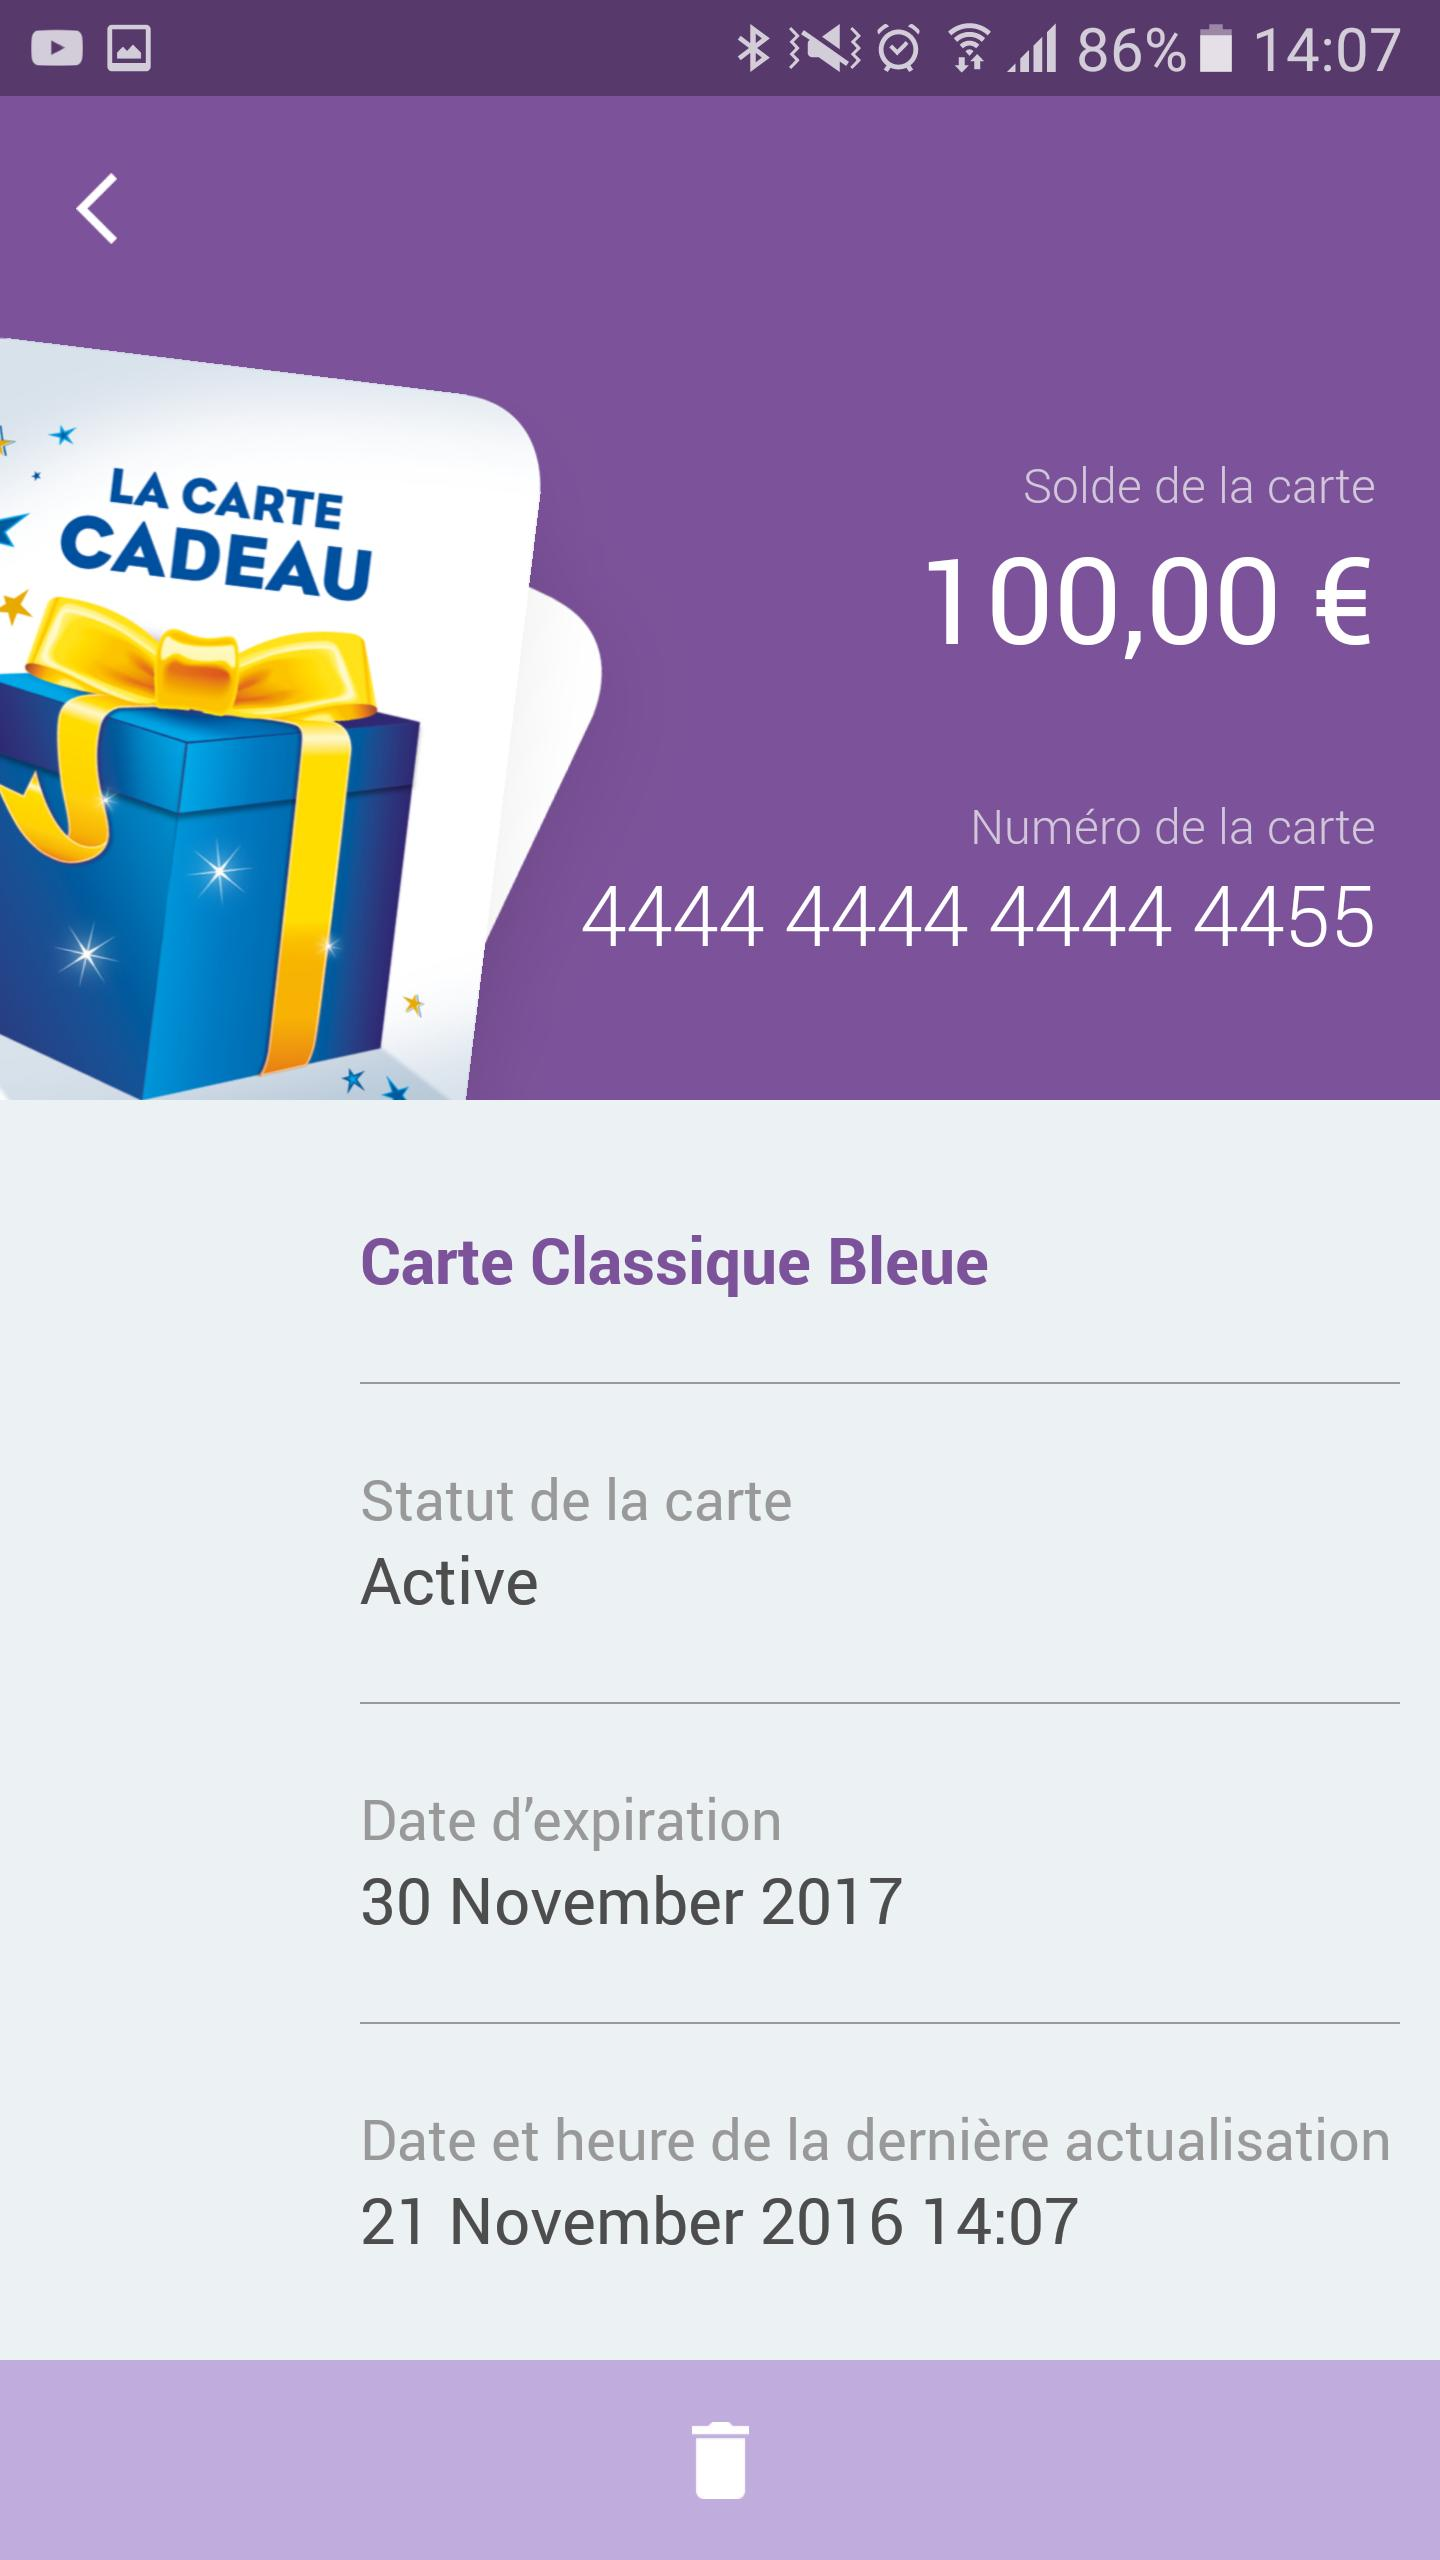 carte cadeau spirit of cadeau Carte cadeau Spirit of Cadeau for Android   APK Download